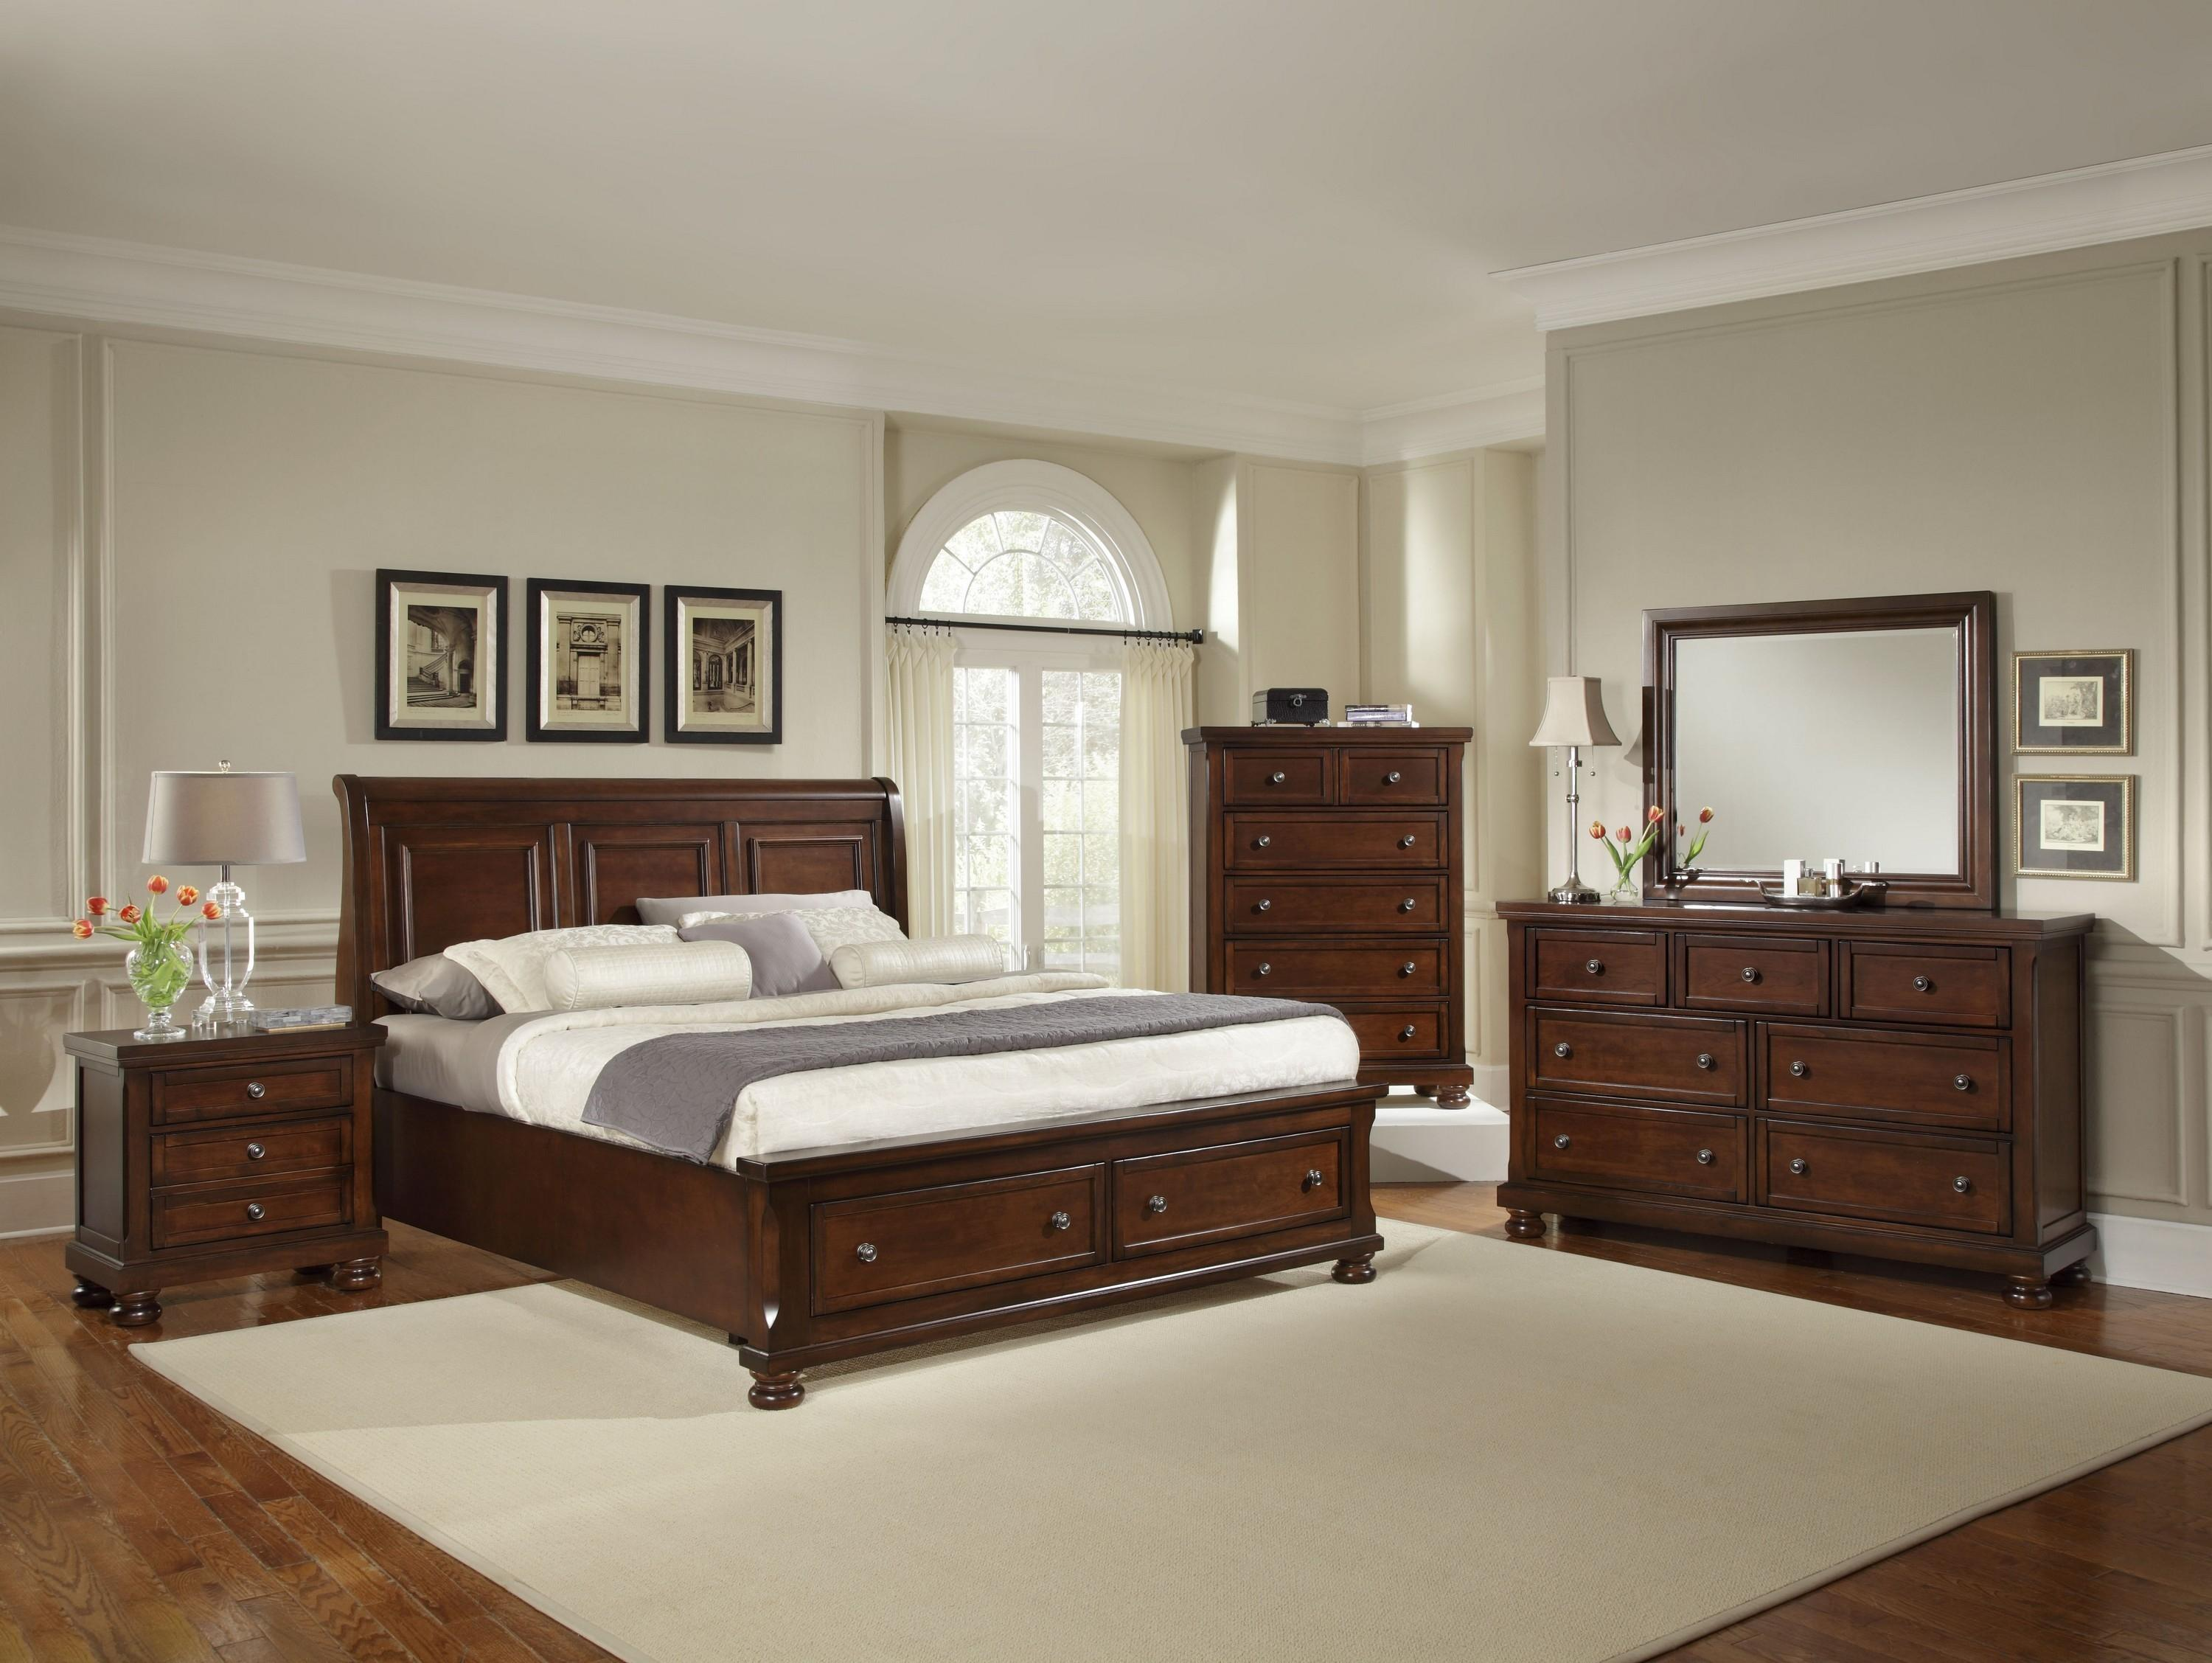 Vaughan bassett reflections king storage bed with sleigh for Chambre adulte complete